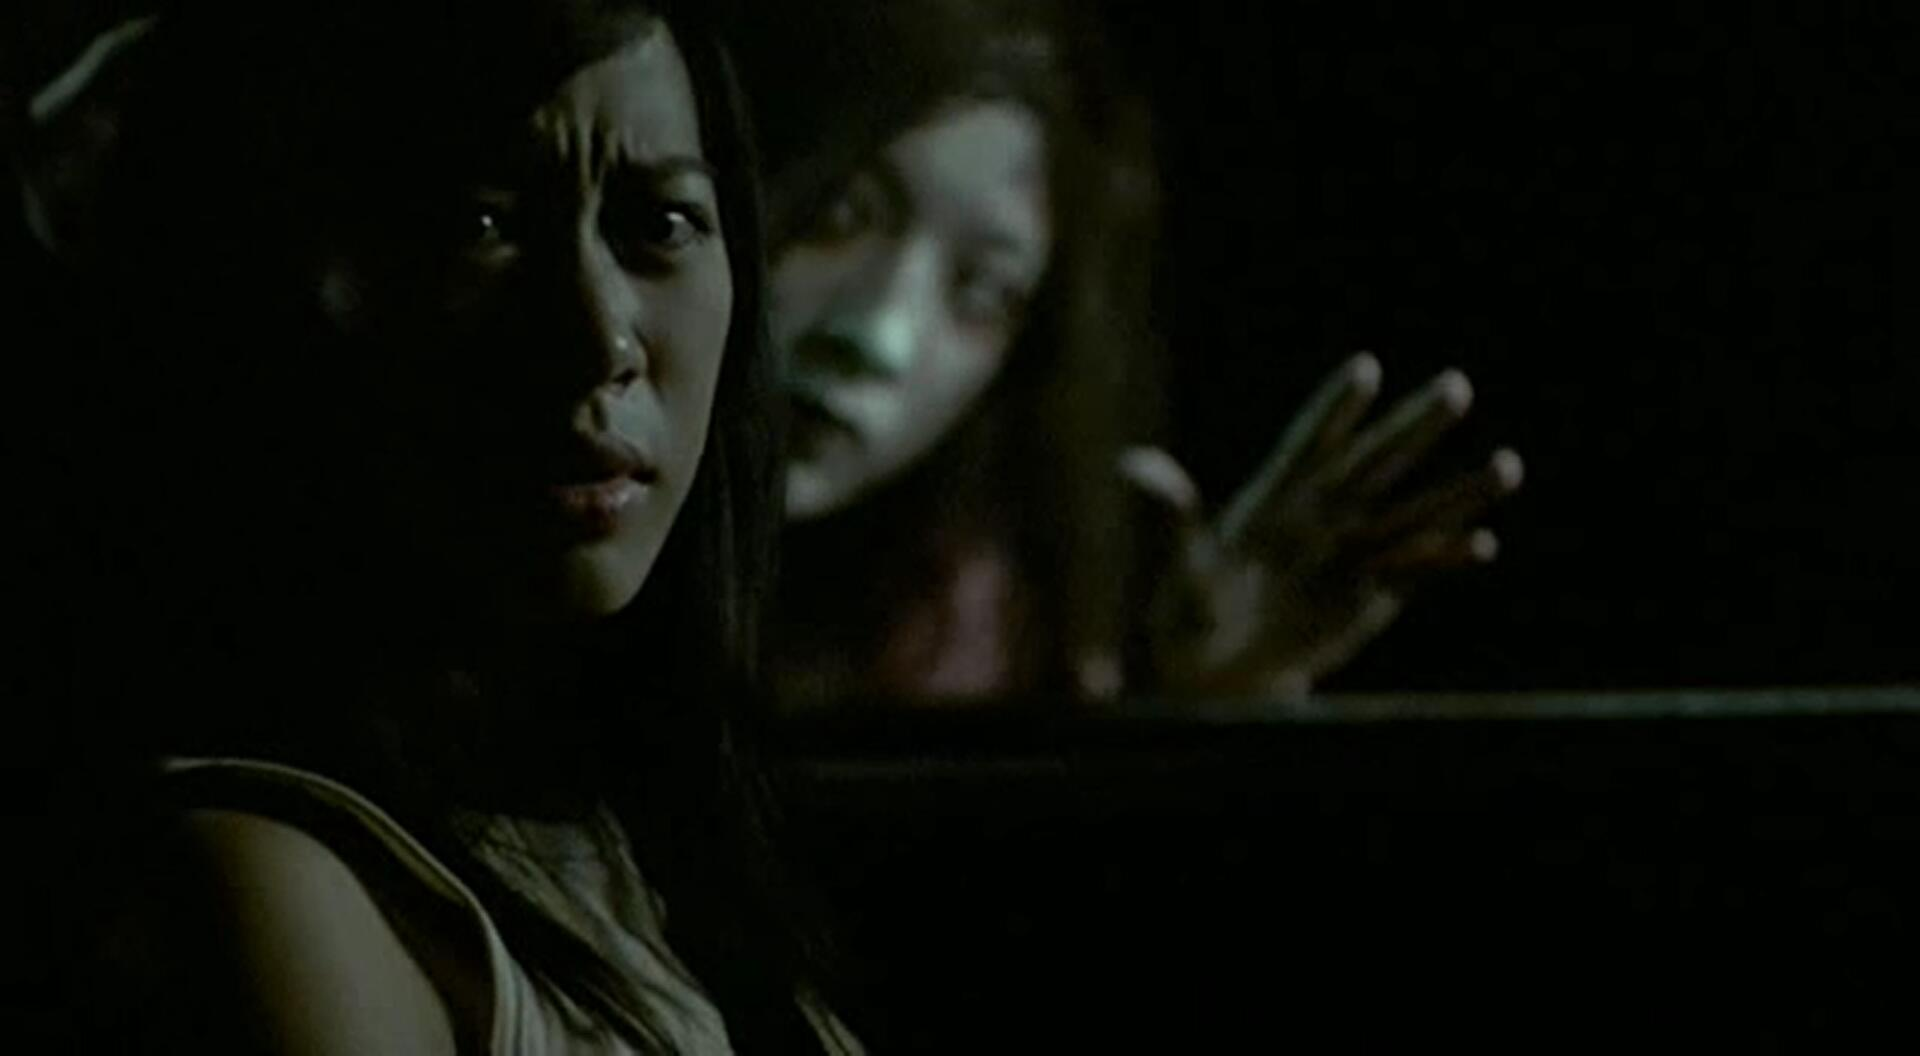 Foreign Horror: Five Best From Thailand - Morbidly Beautiful